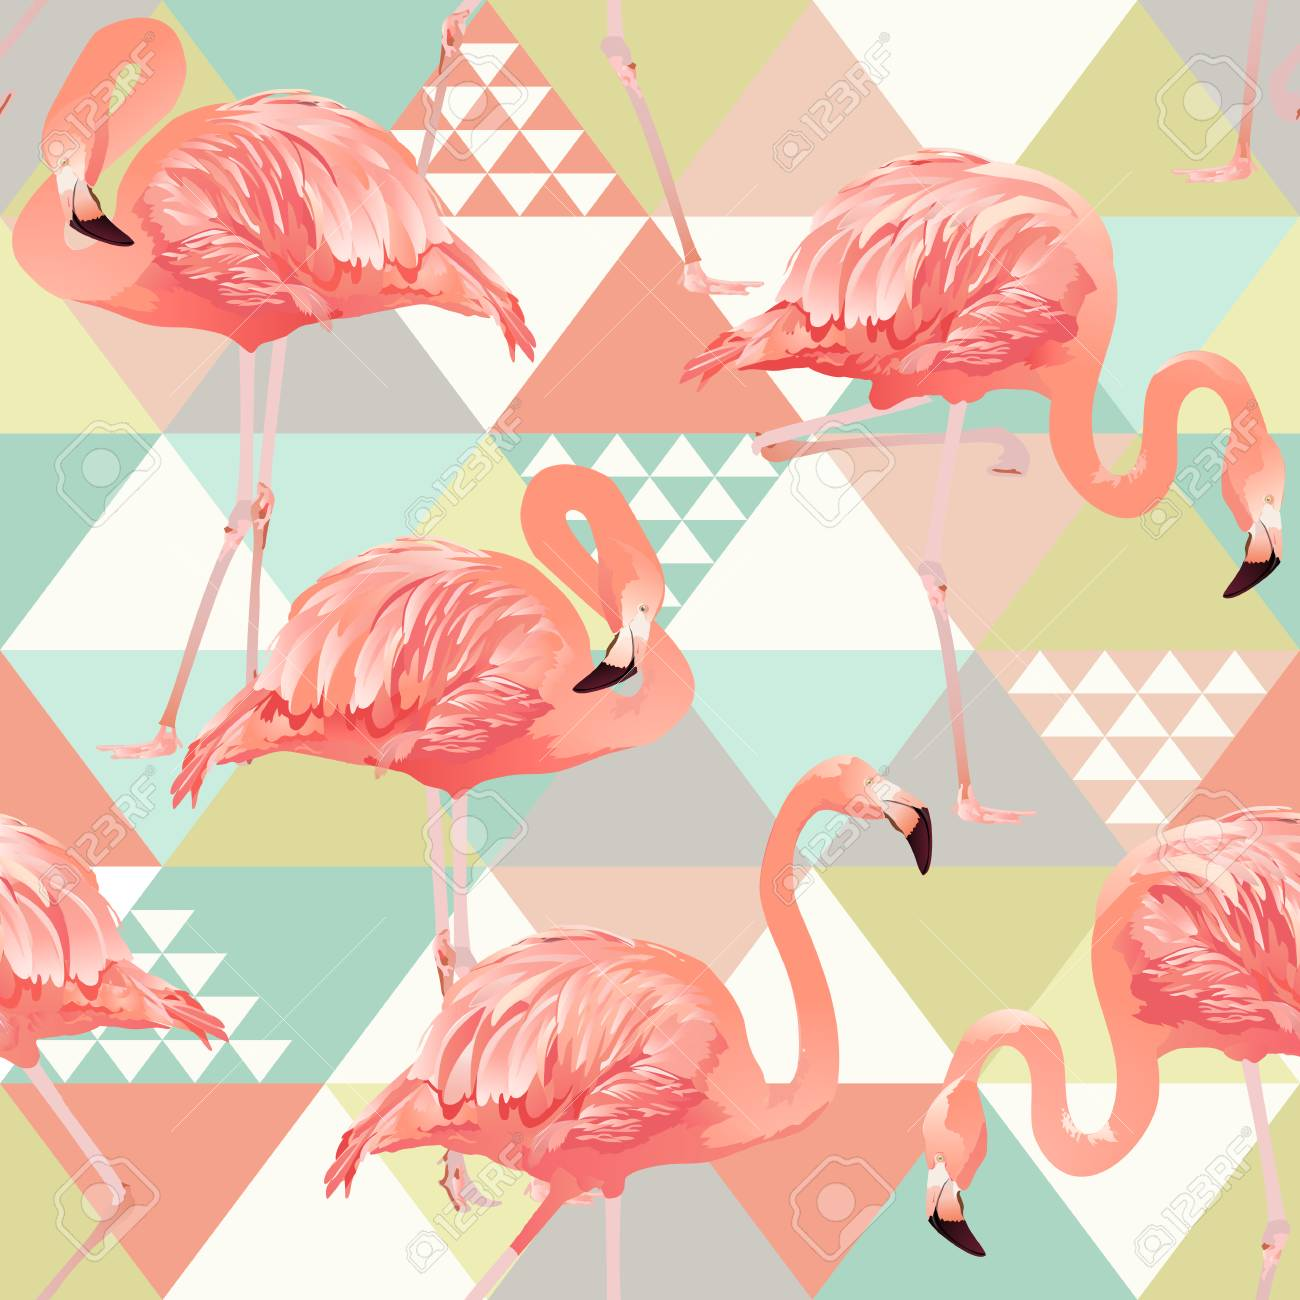 Jungle pink flamingos. Wallpaper print background mosaic. Exotic beach trendy seamless pattern, patchwork illustrated floral vector tropical banana leaves. - 94221516